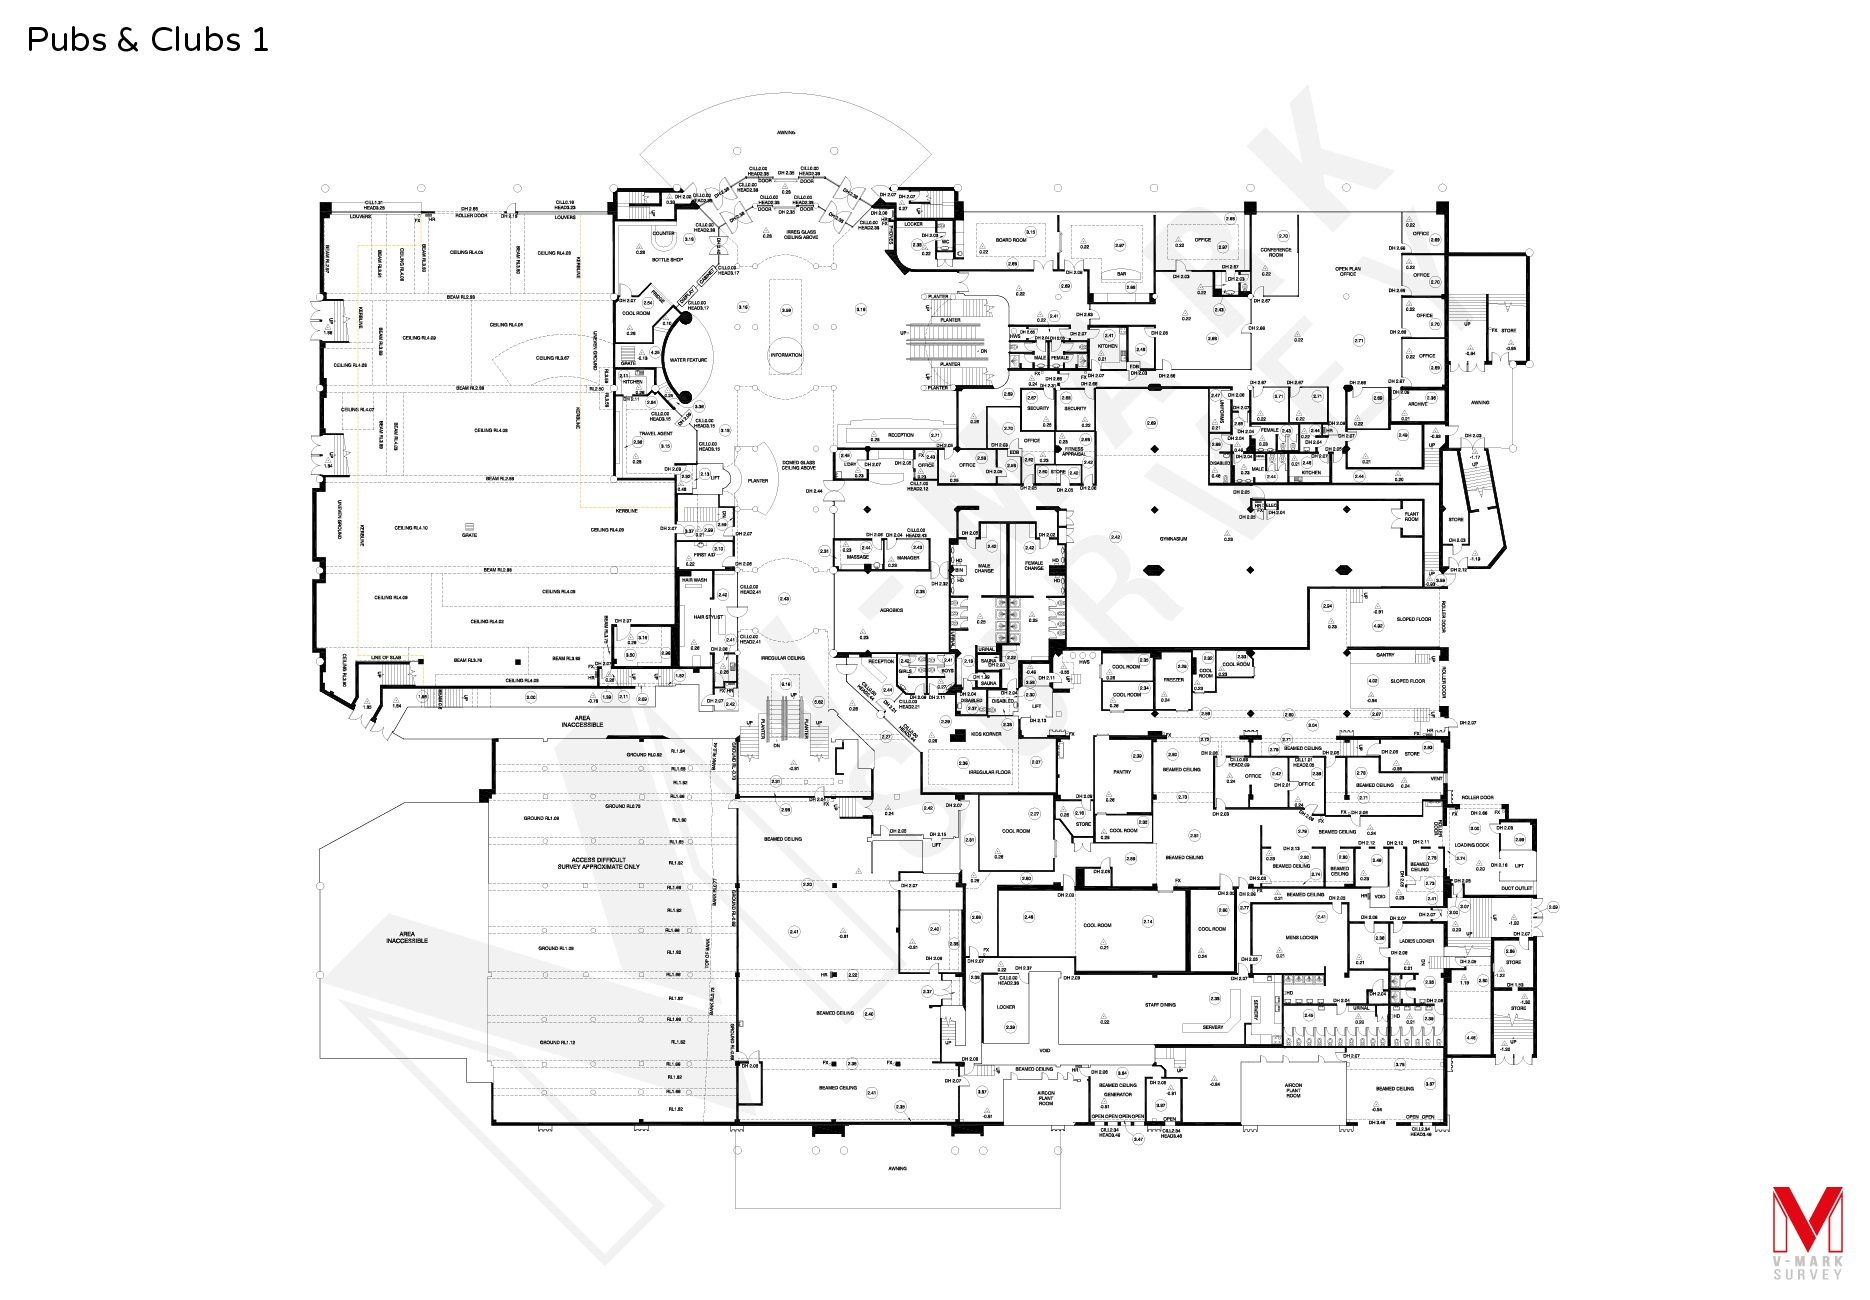 Pubs & Clubs Floorplans